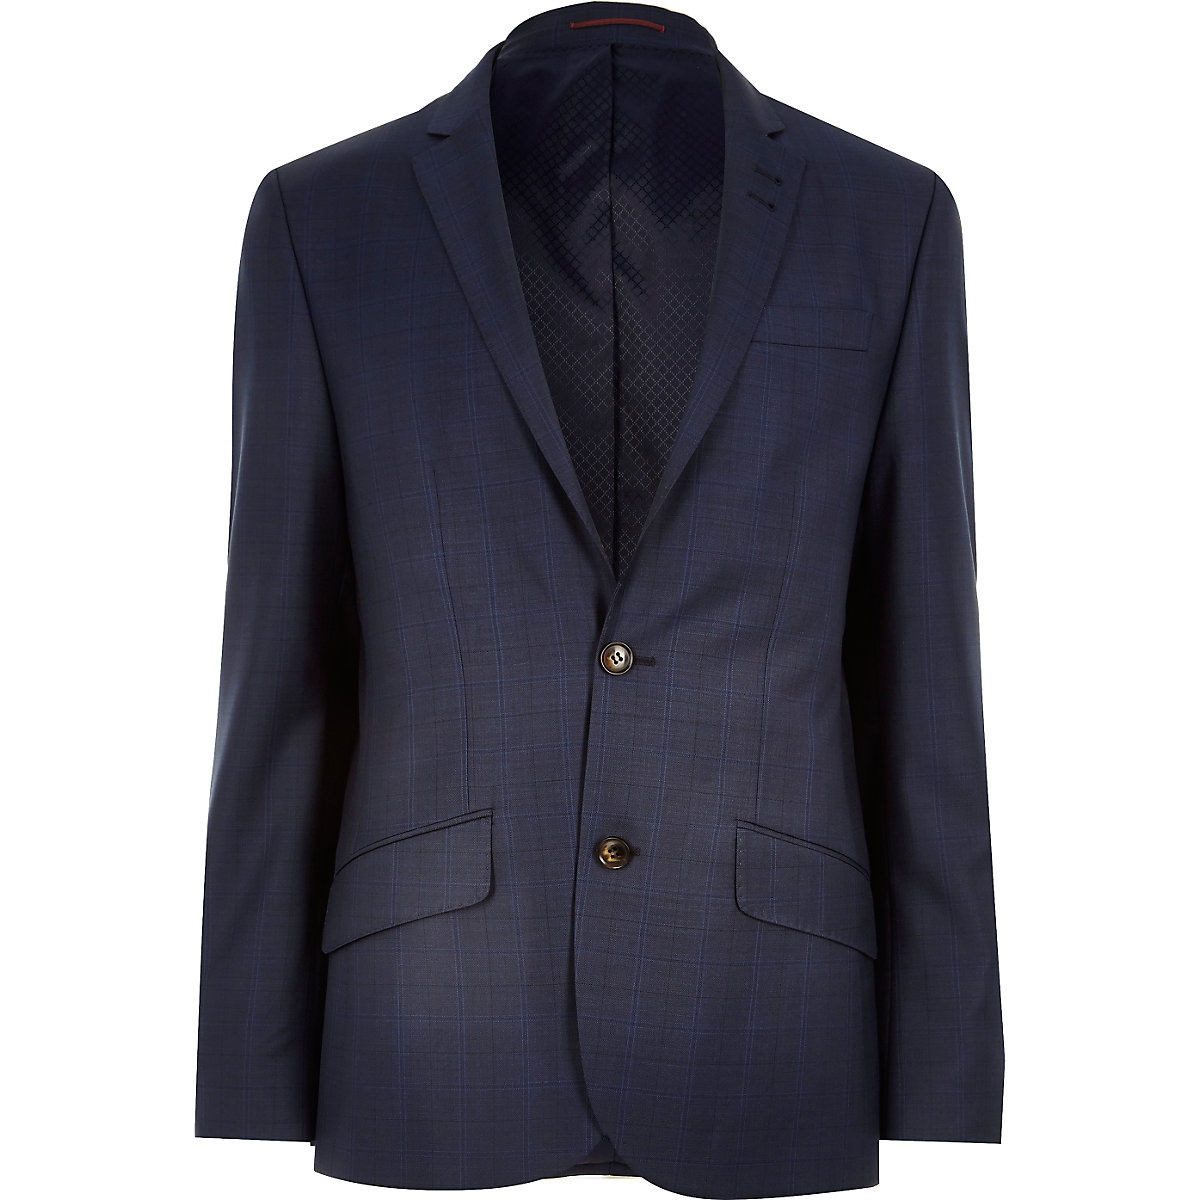 Navy subtle check slim suit jacket